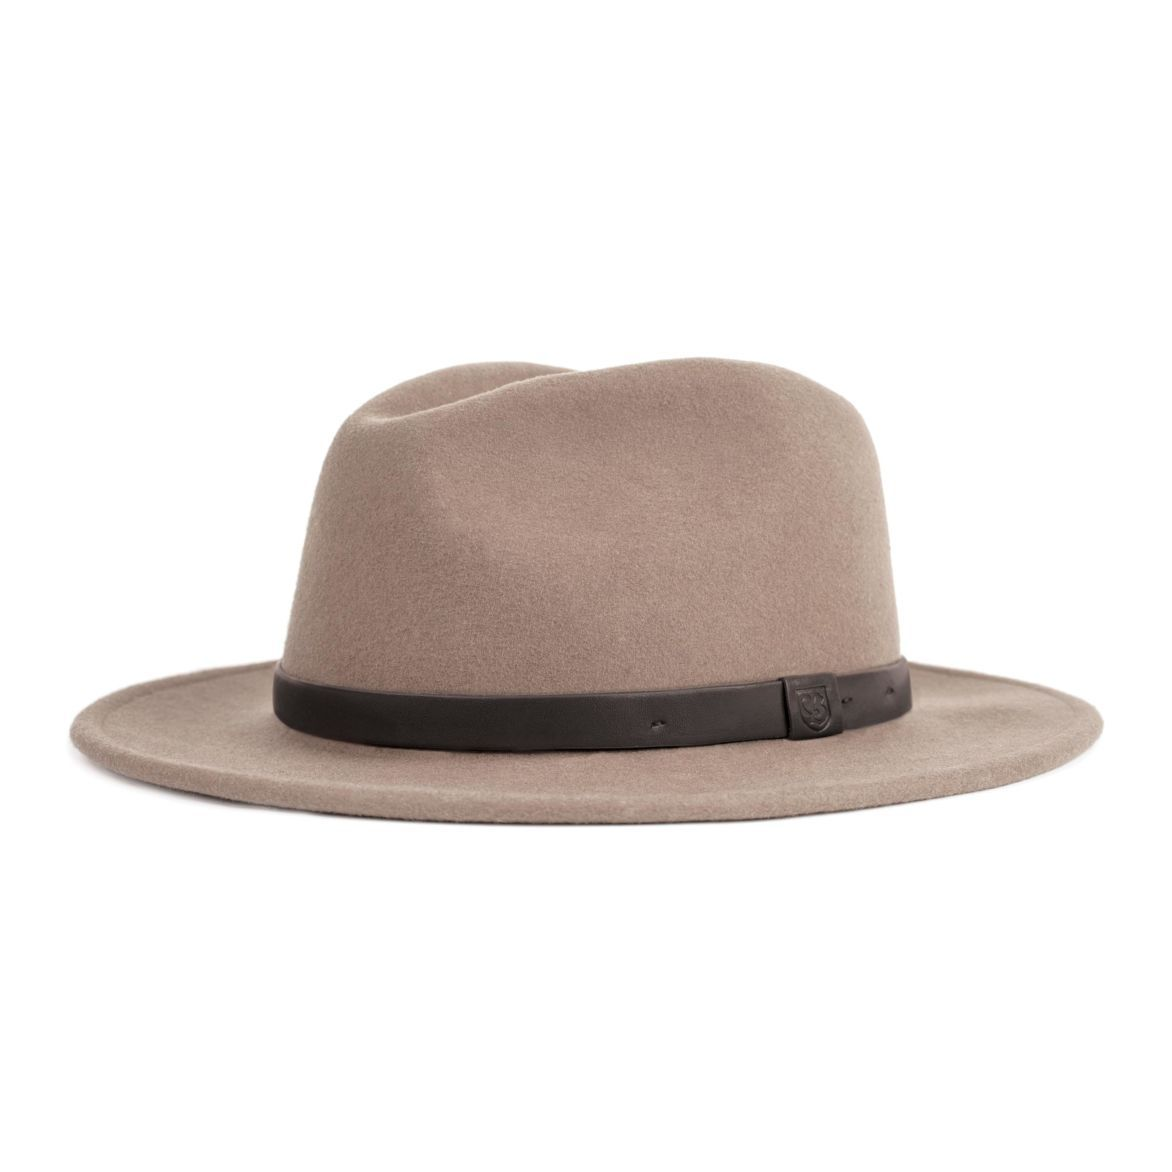 MESSER FEDORA - Full Brim   Fedoras - Headwear - Women s  773960b0f37